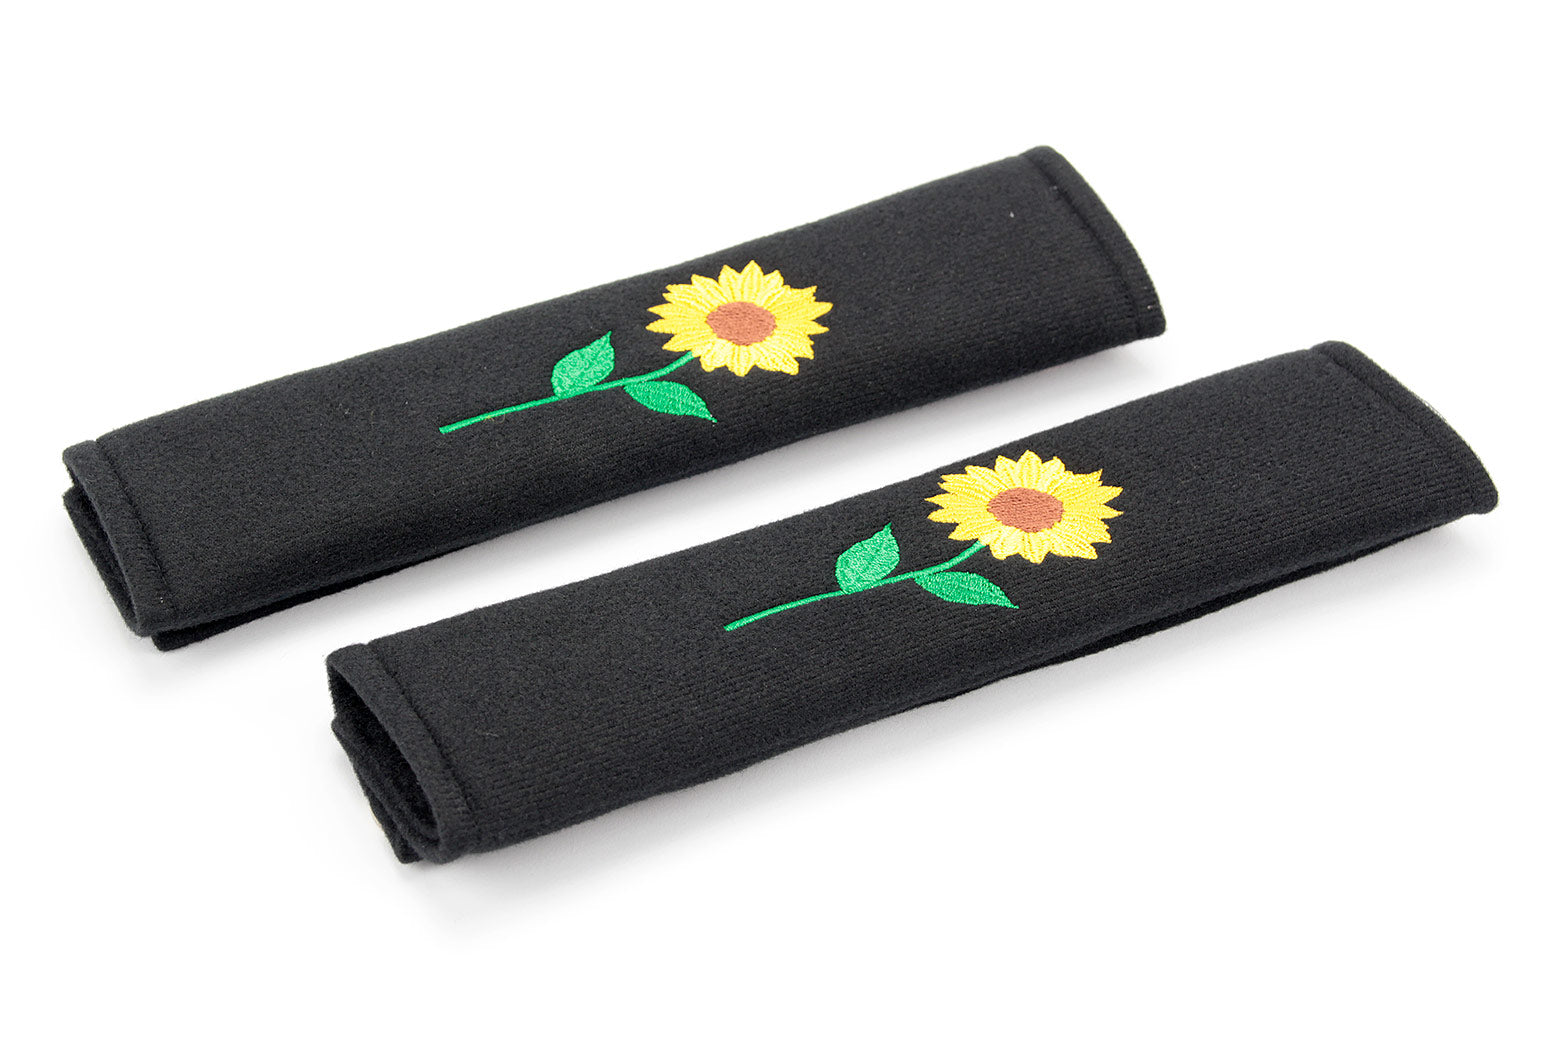 Embroidered padded seat belt cover with sunflower logo